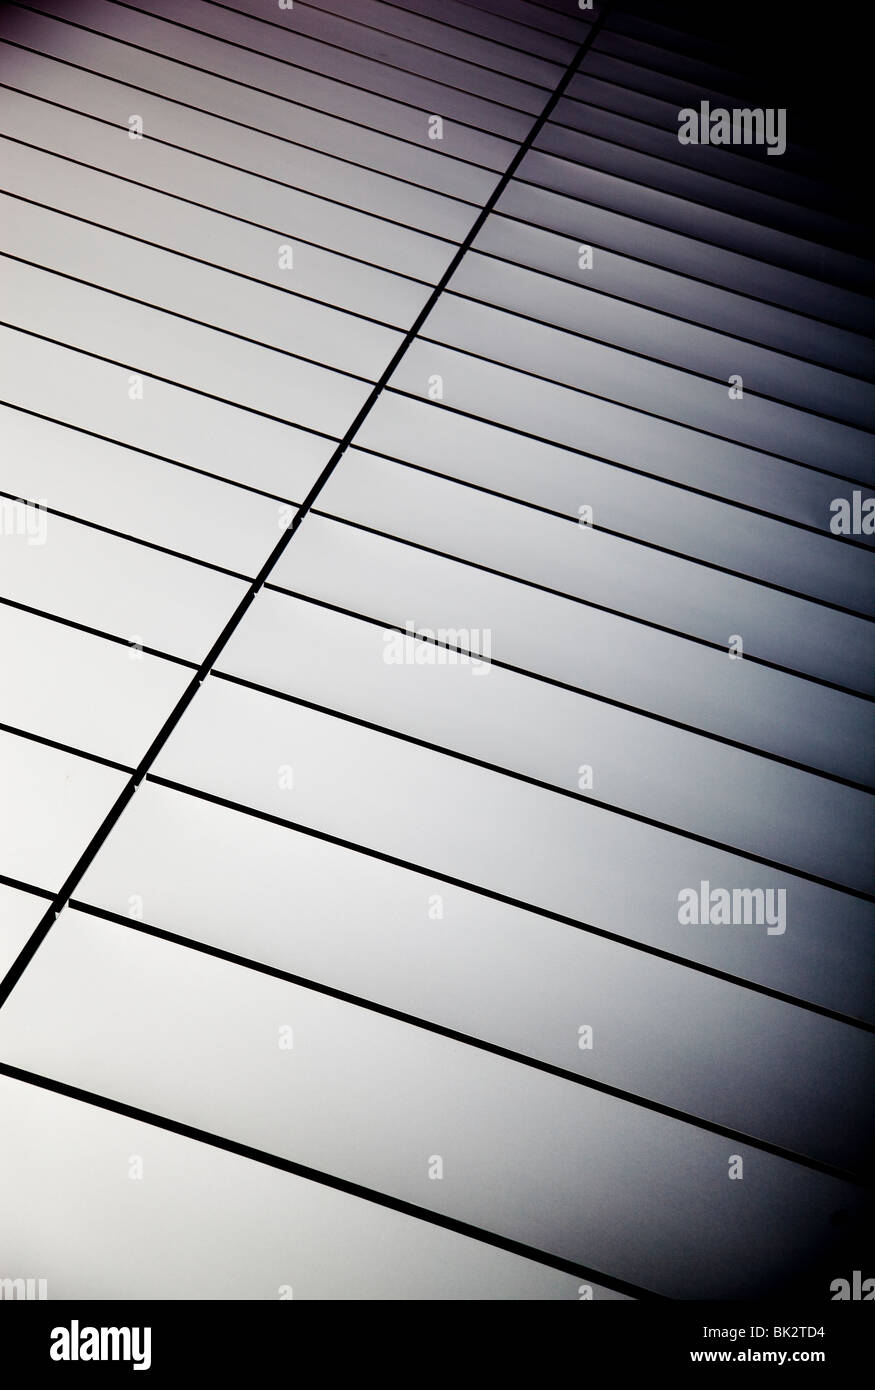 Wall made of Polished steel plates - Stock Image